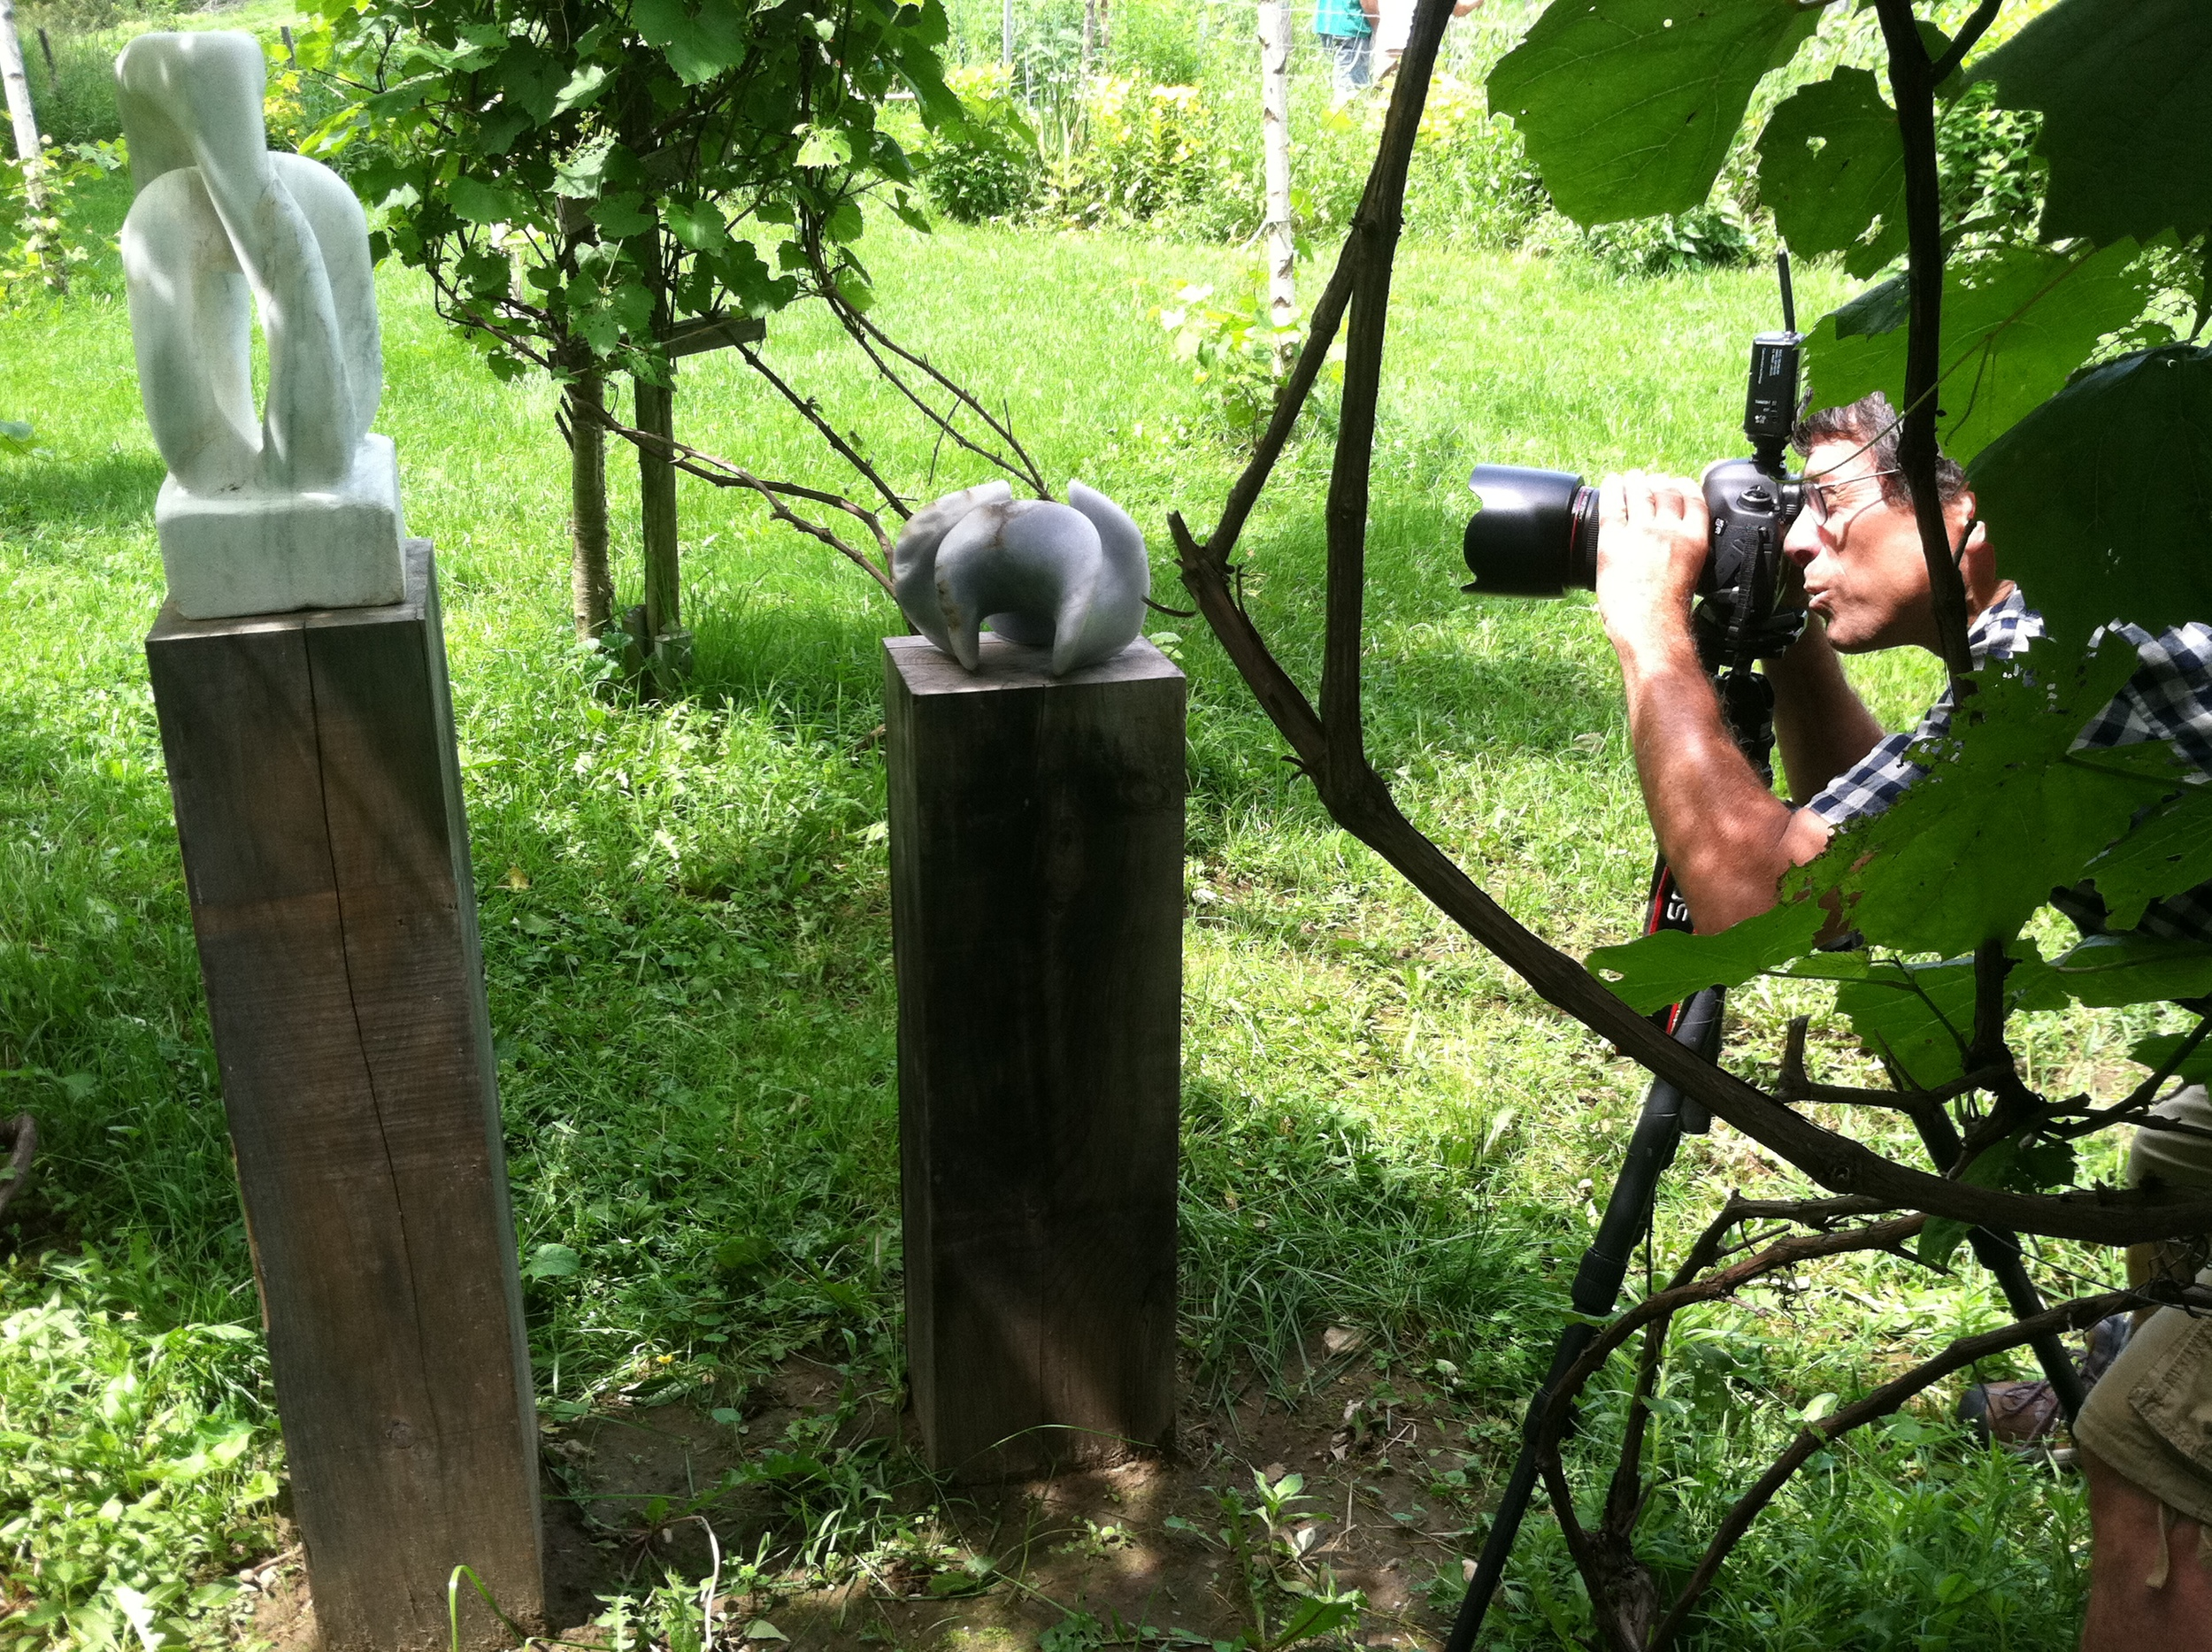 Tony Cenicola capturing an image of two carved pieces in backyard vineyard